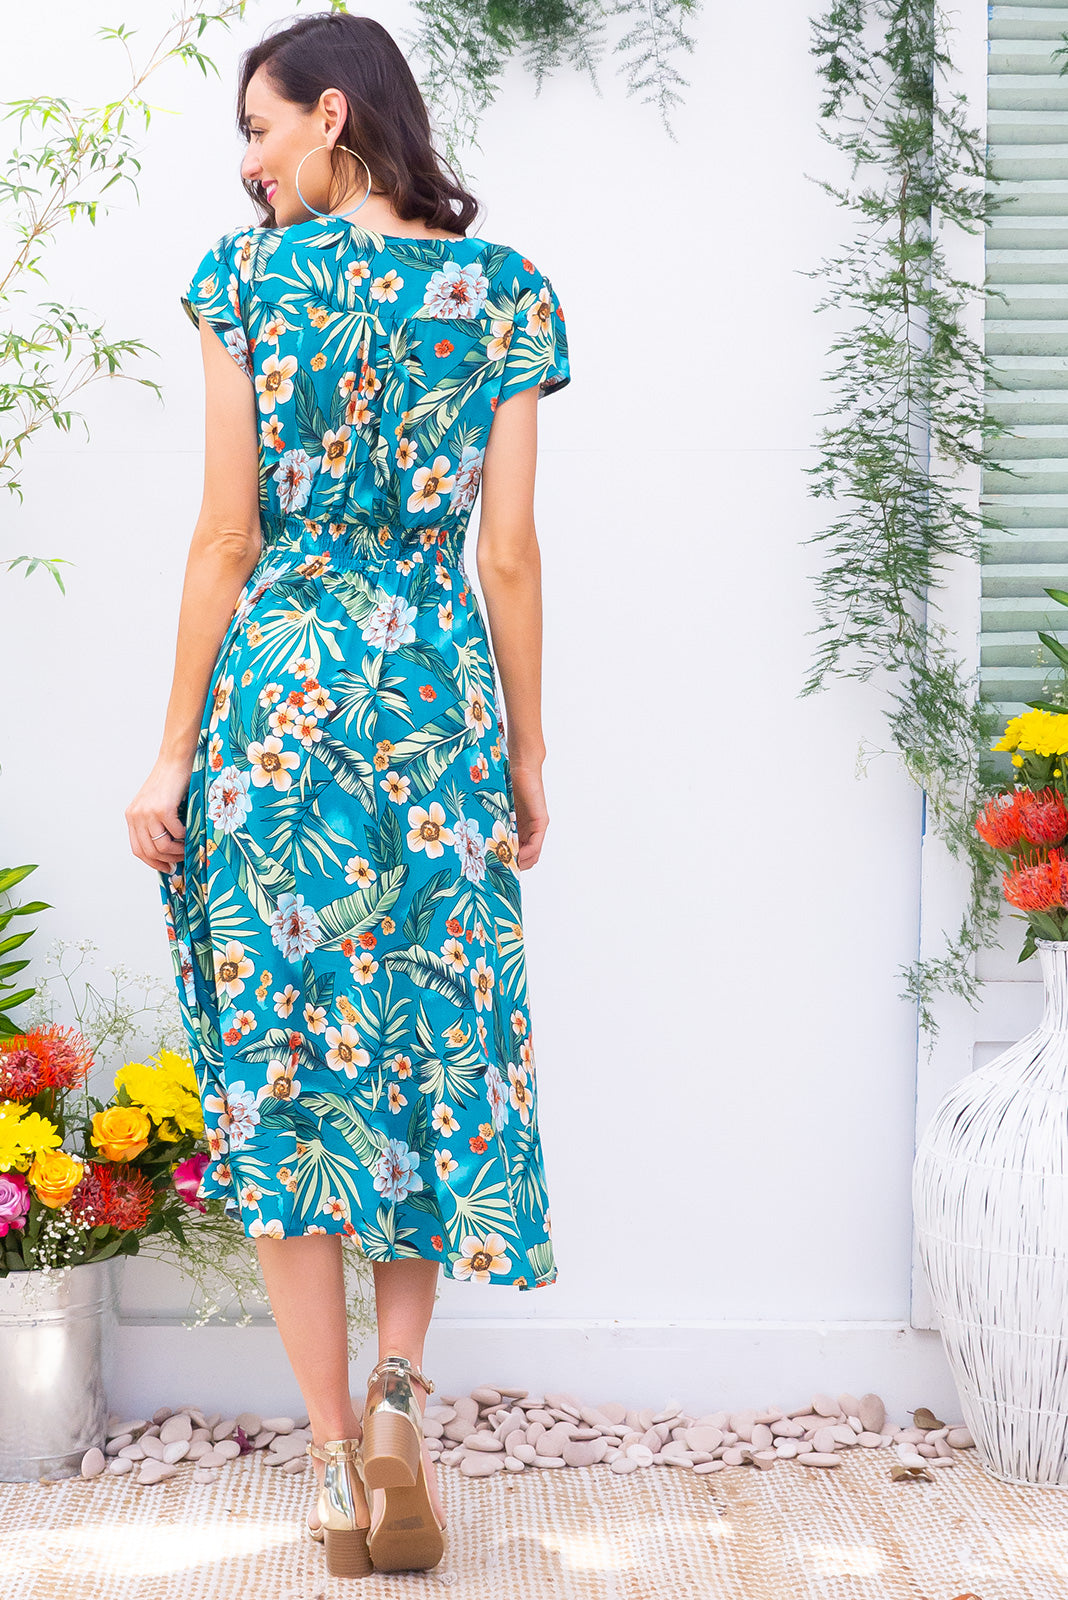 Lizzie Lucia Jungle Teal Midi dress features a vintage inspired fitted basque waist and elasticated waist with a cap sleeve and deep v neck the fabric is a soft woven rayon in a strong teal green tropical inspired floral print